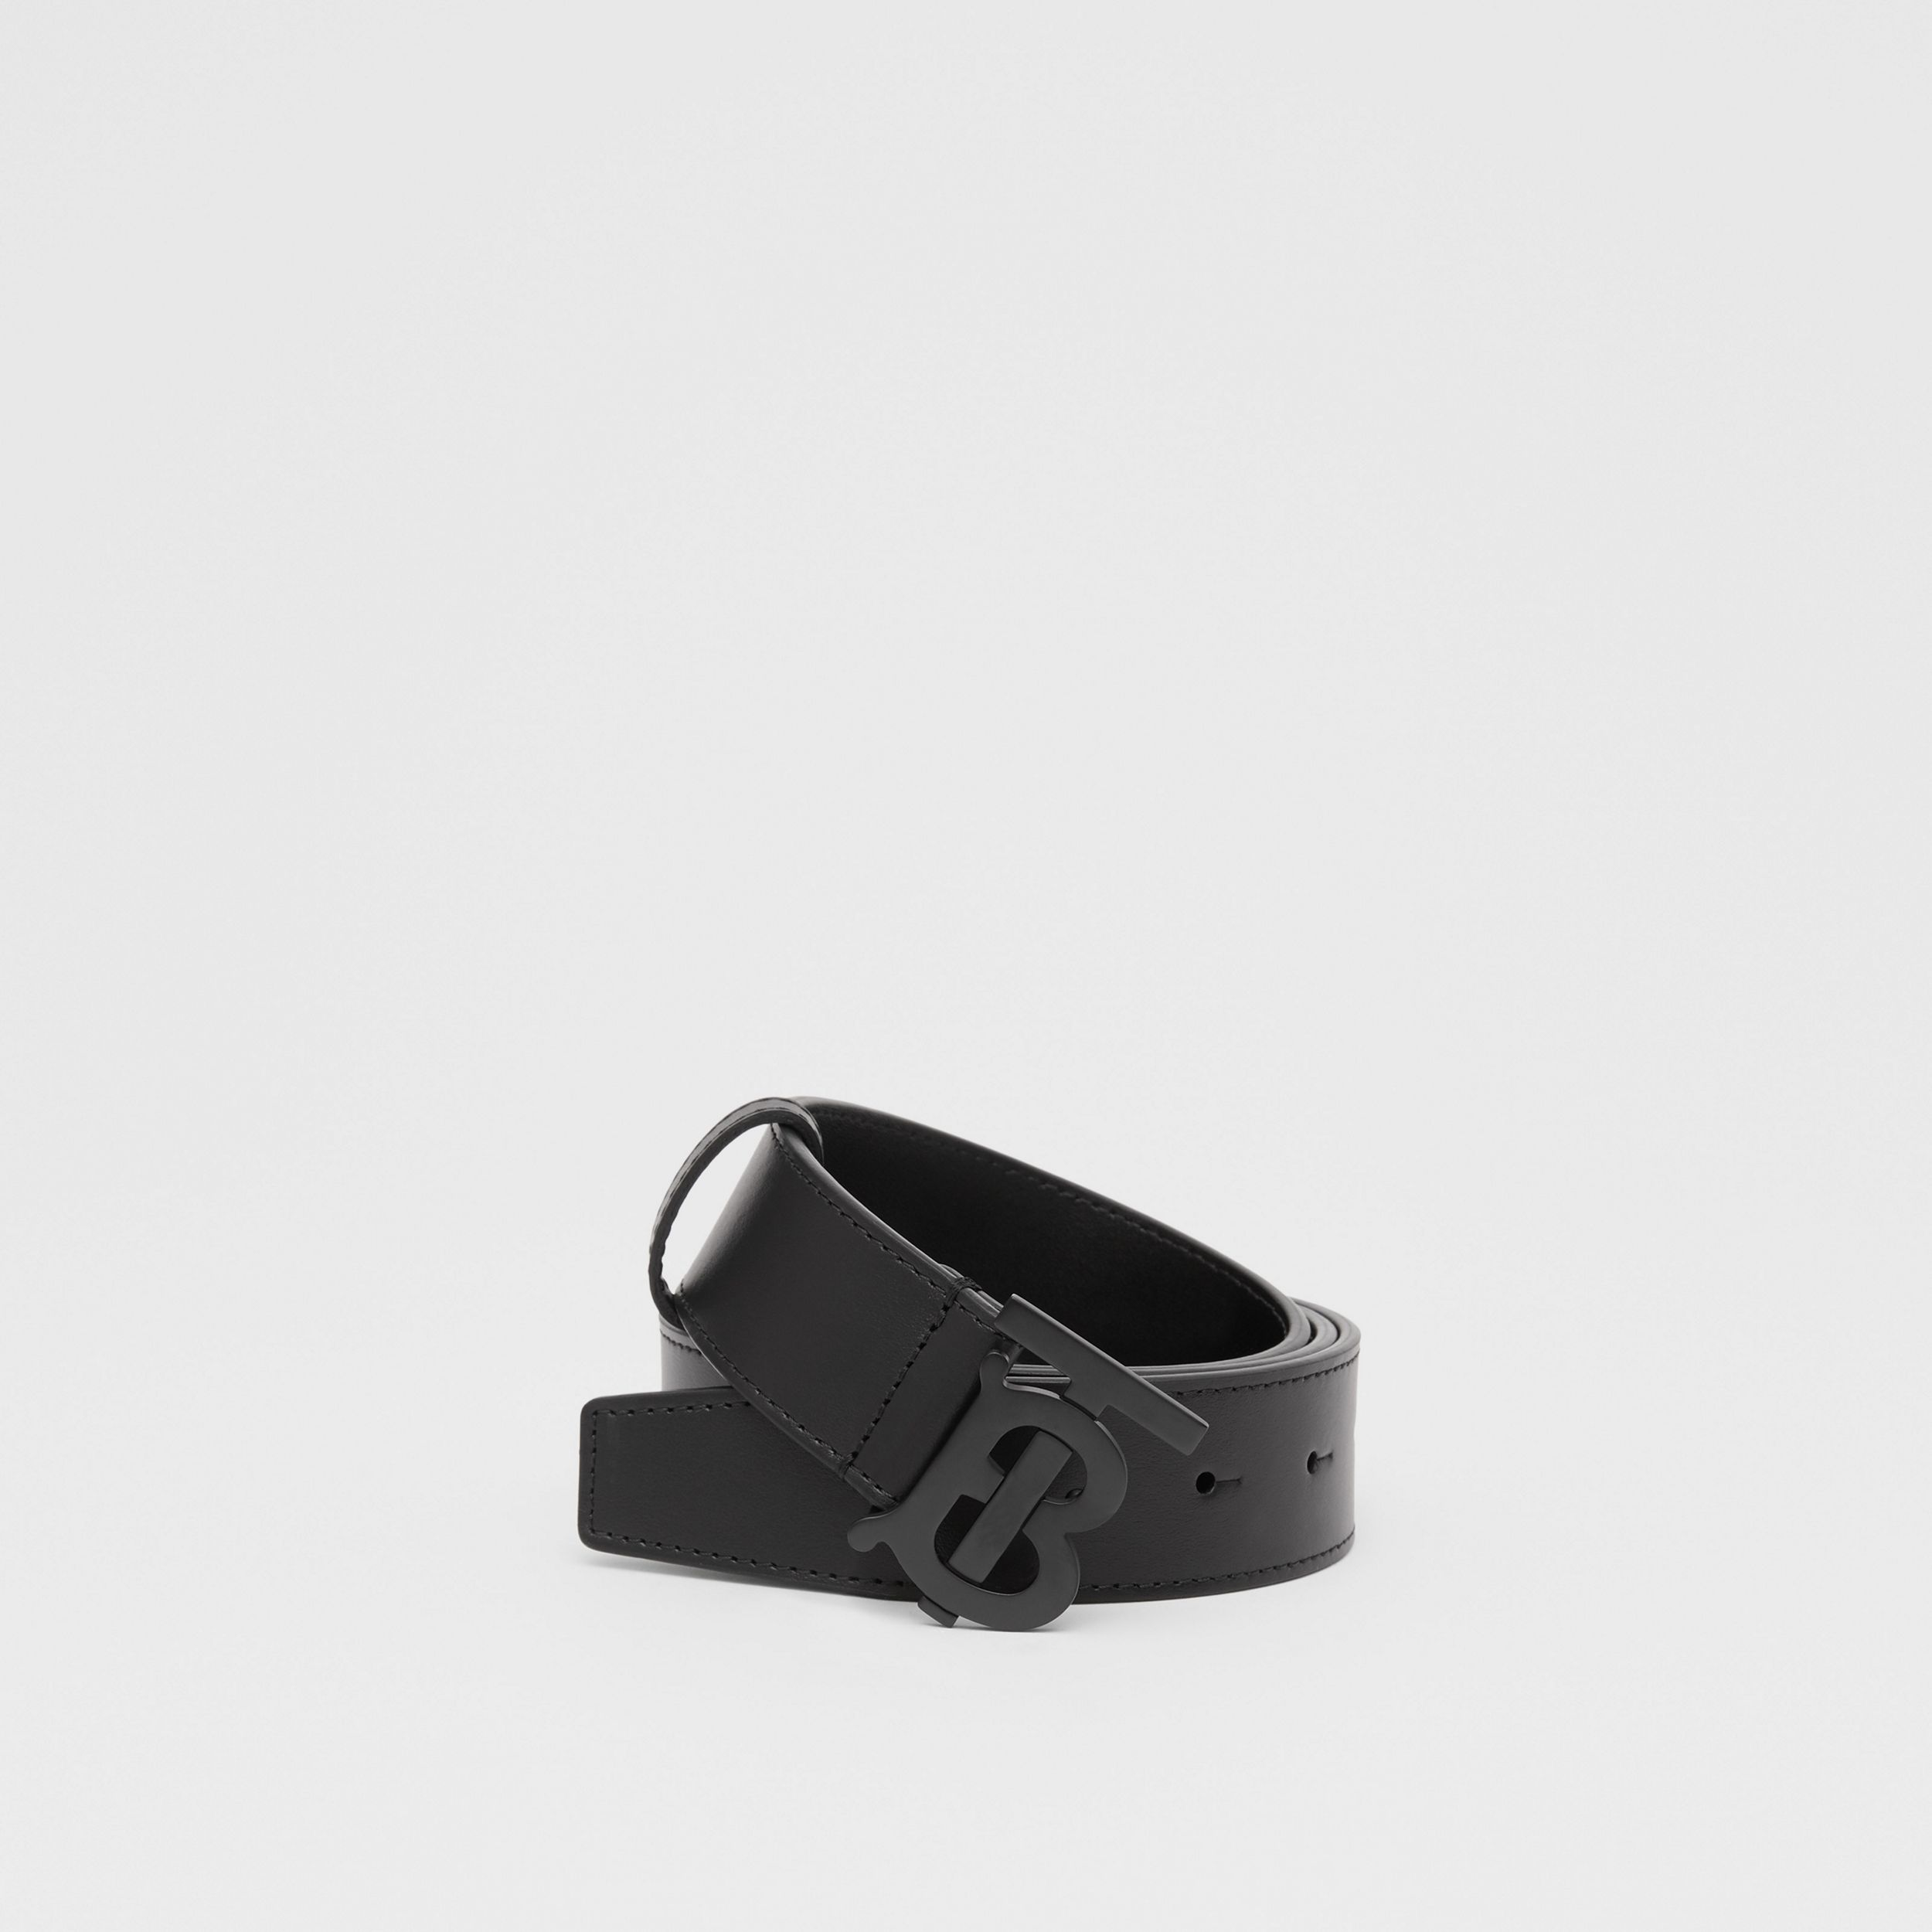 Matte Monogram Motif Leather Belt in Black - Men | Burberry - 1